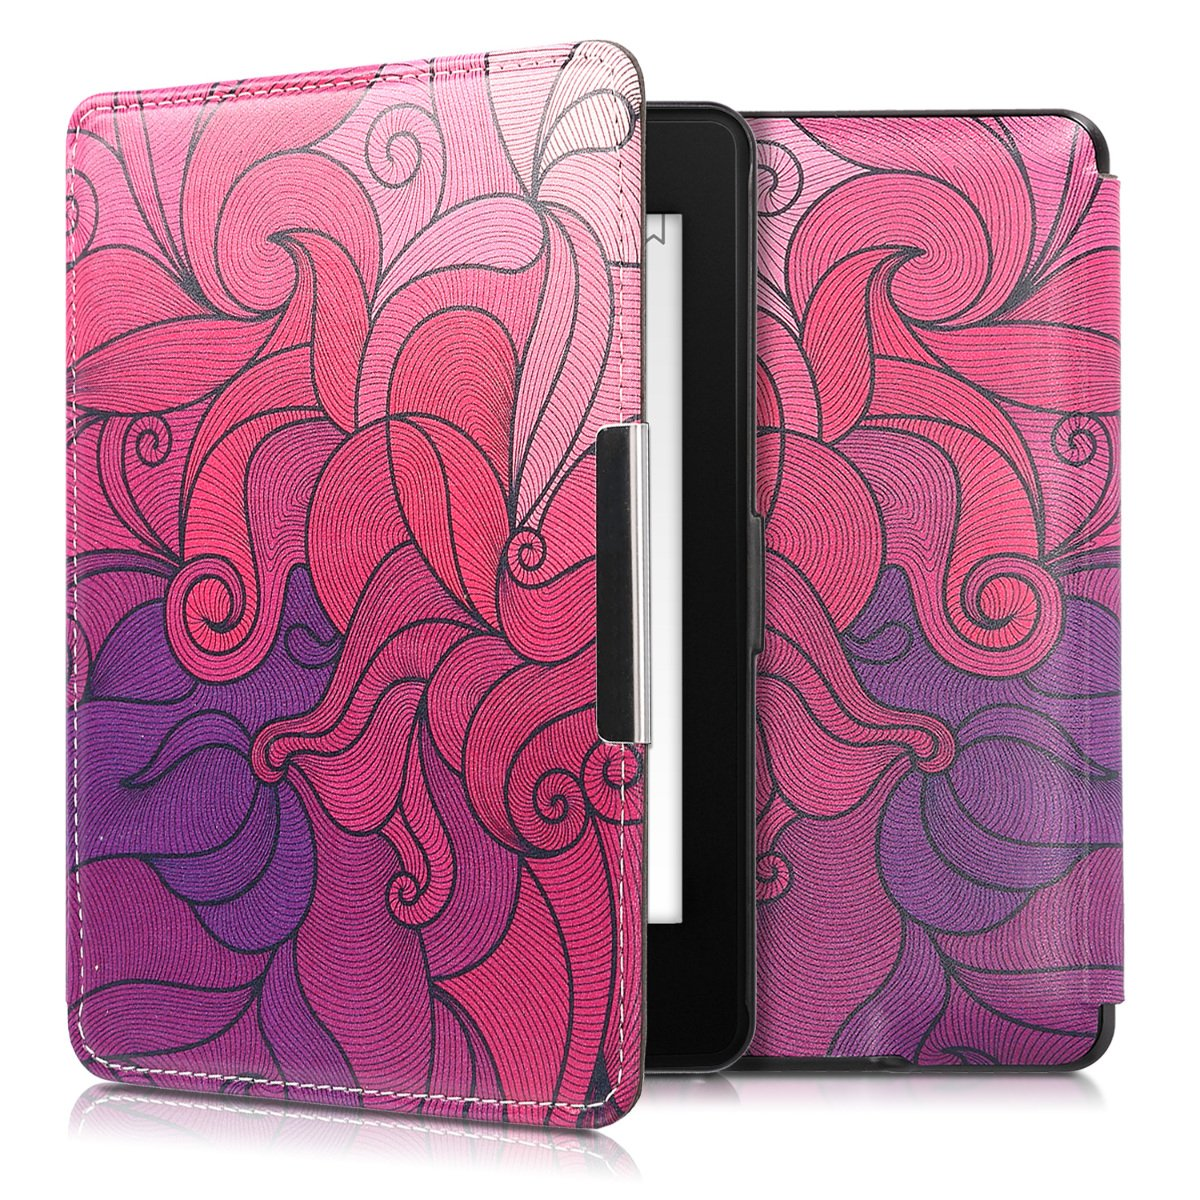 kwmobile Case for Amazon Kindle Paperwhite - Book Style PU Leather Protective e-Reader Cover Folio Case - dark pink violet light pink